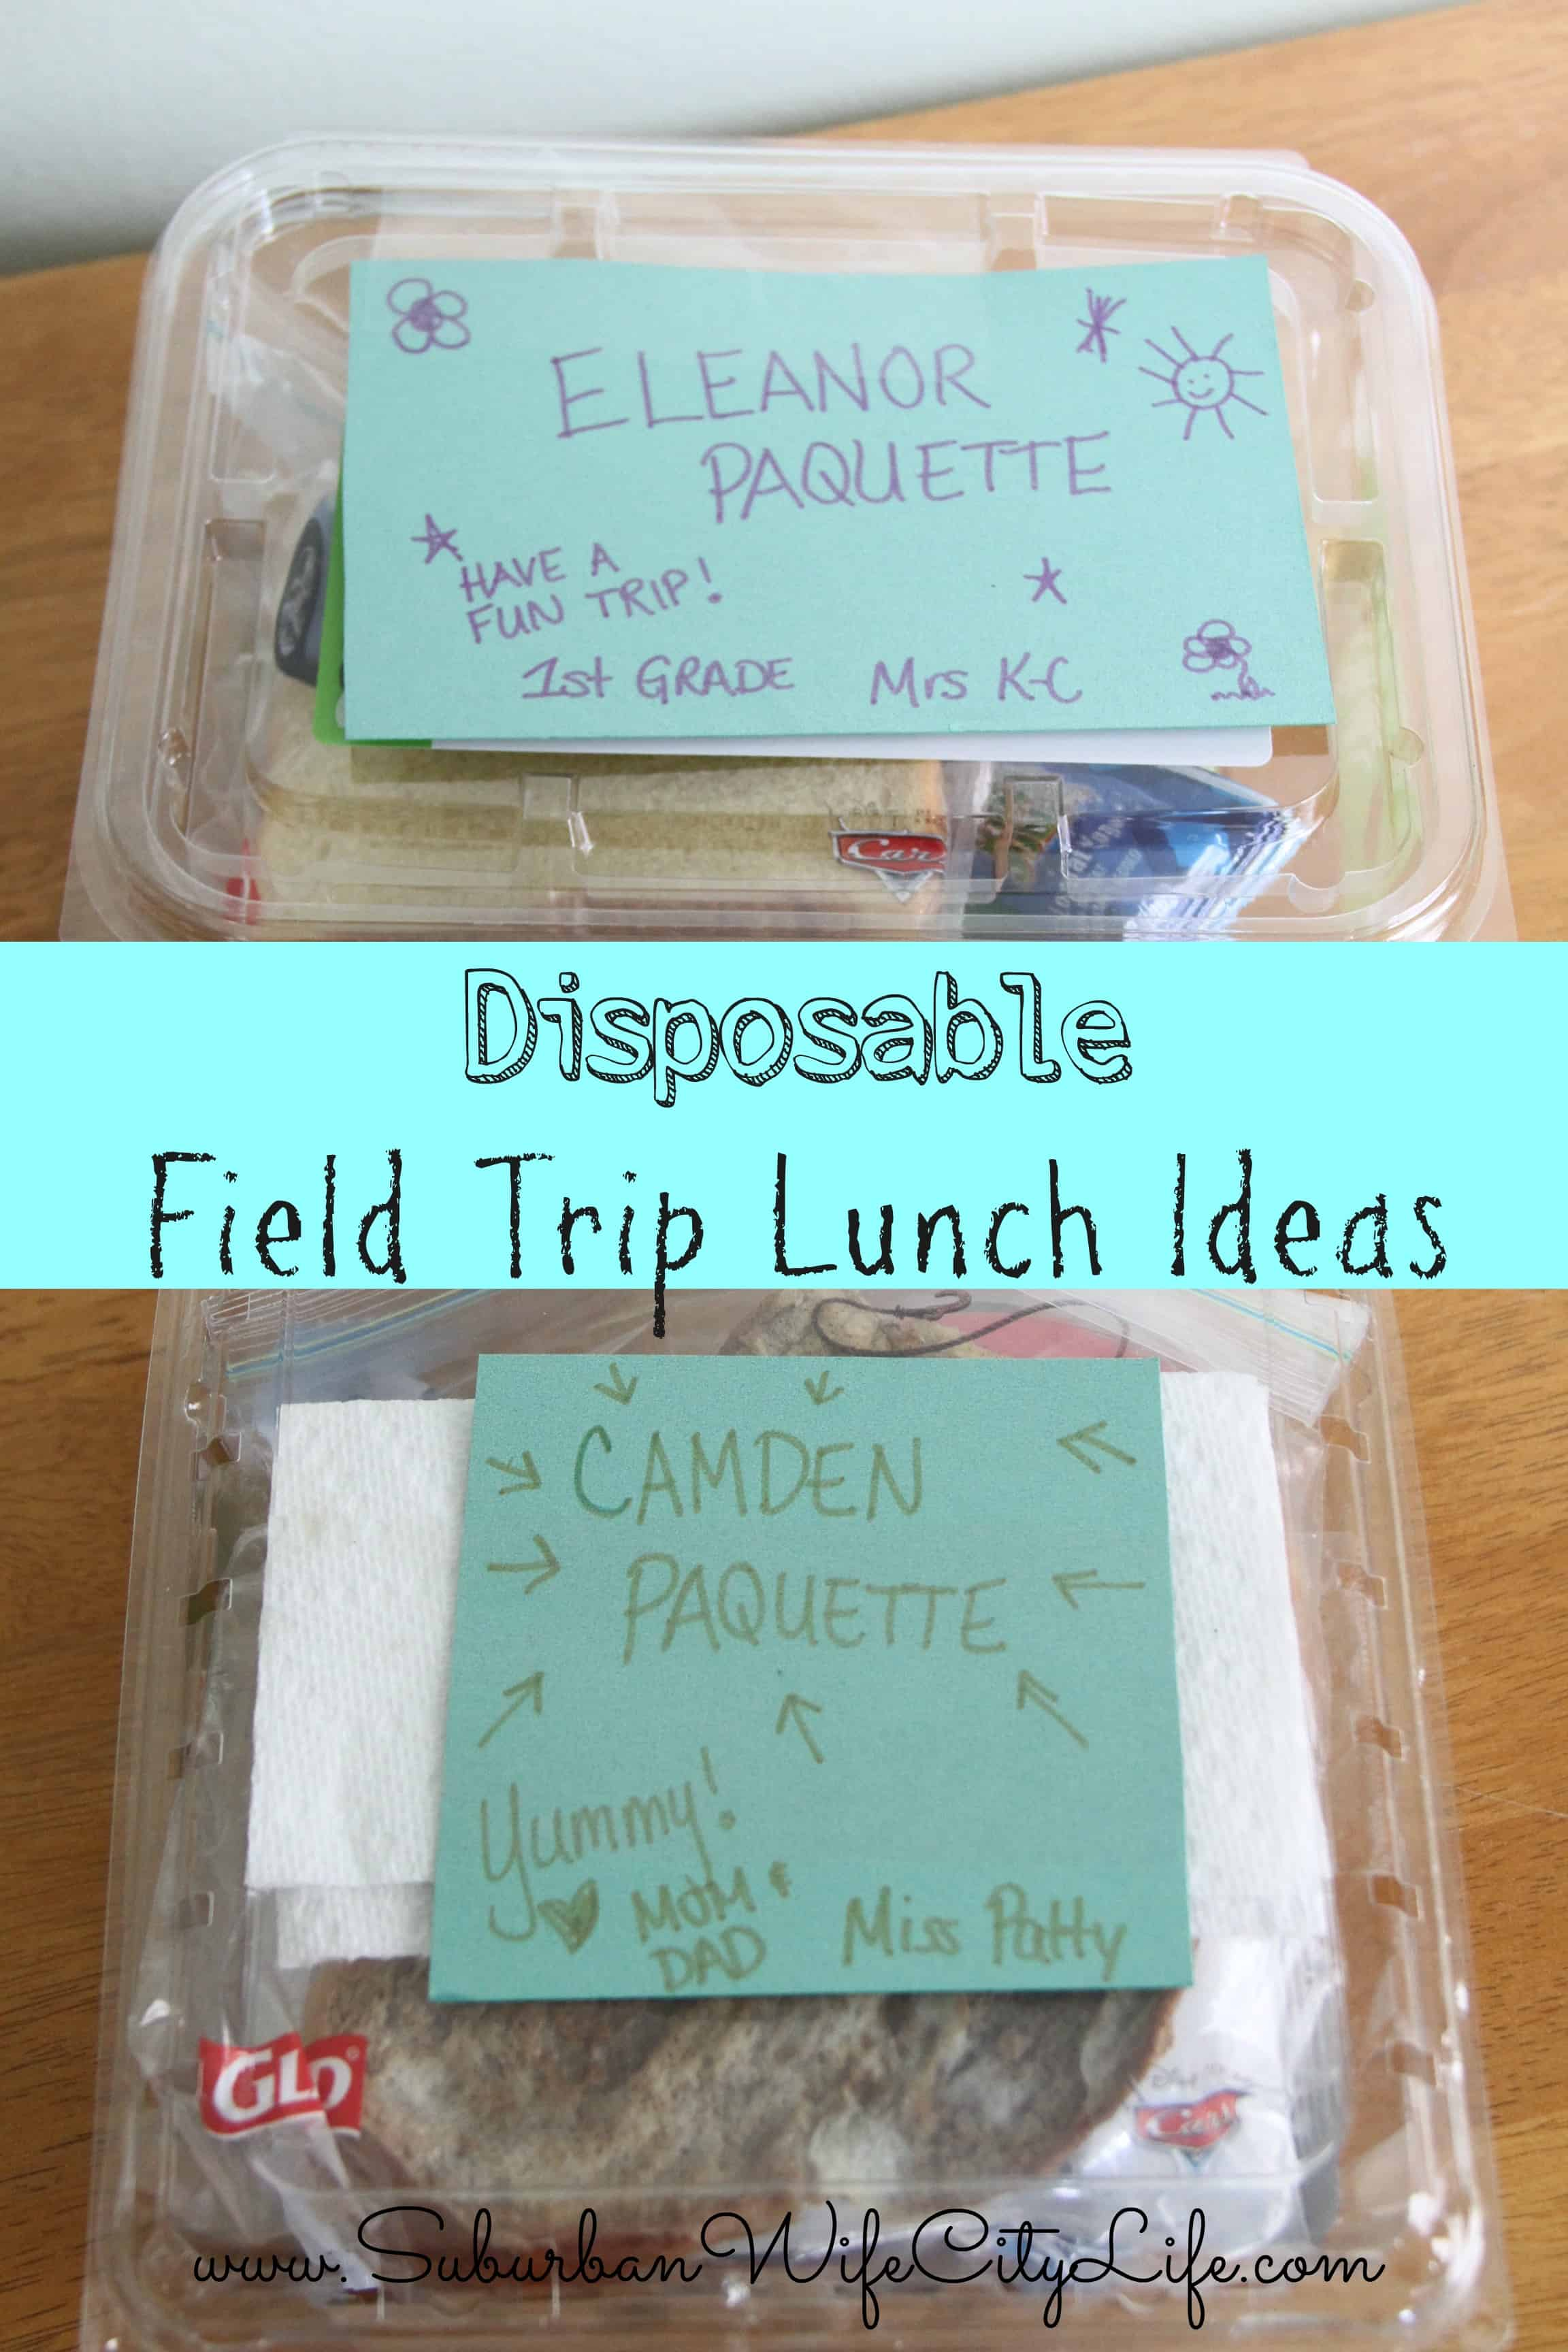 Field Trip Lunch Ideas